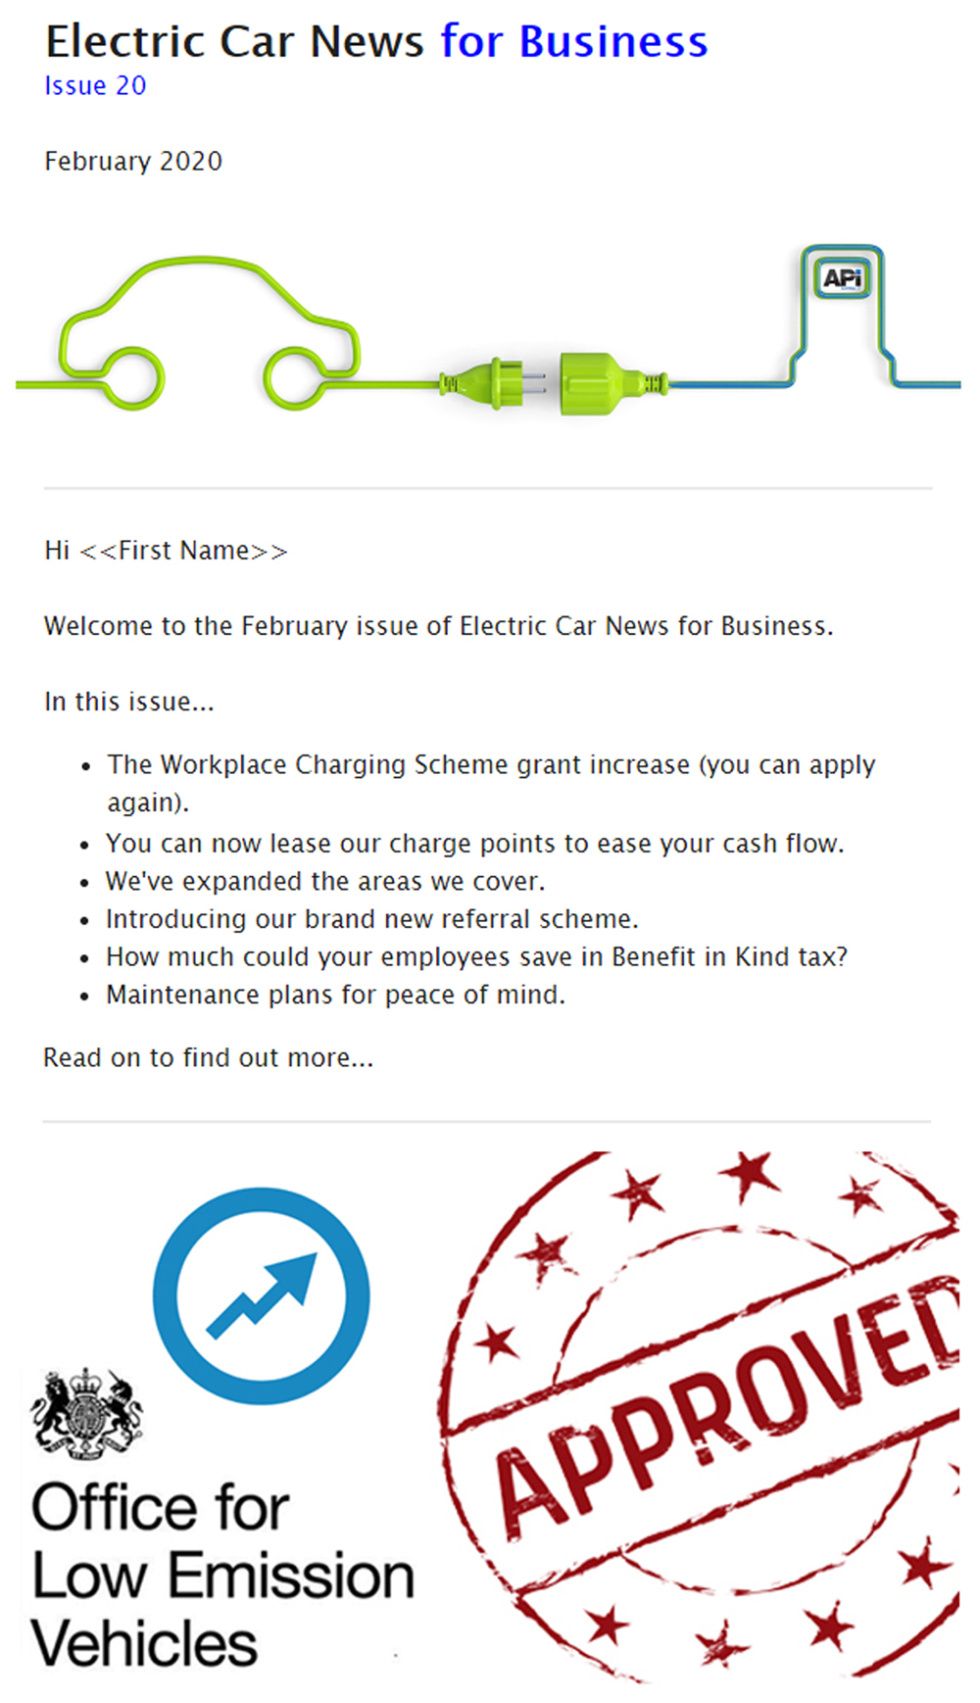 Image of Business to business campaign for electric car charging.